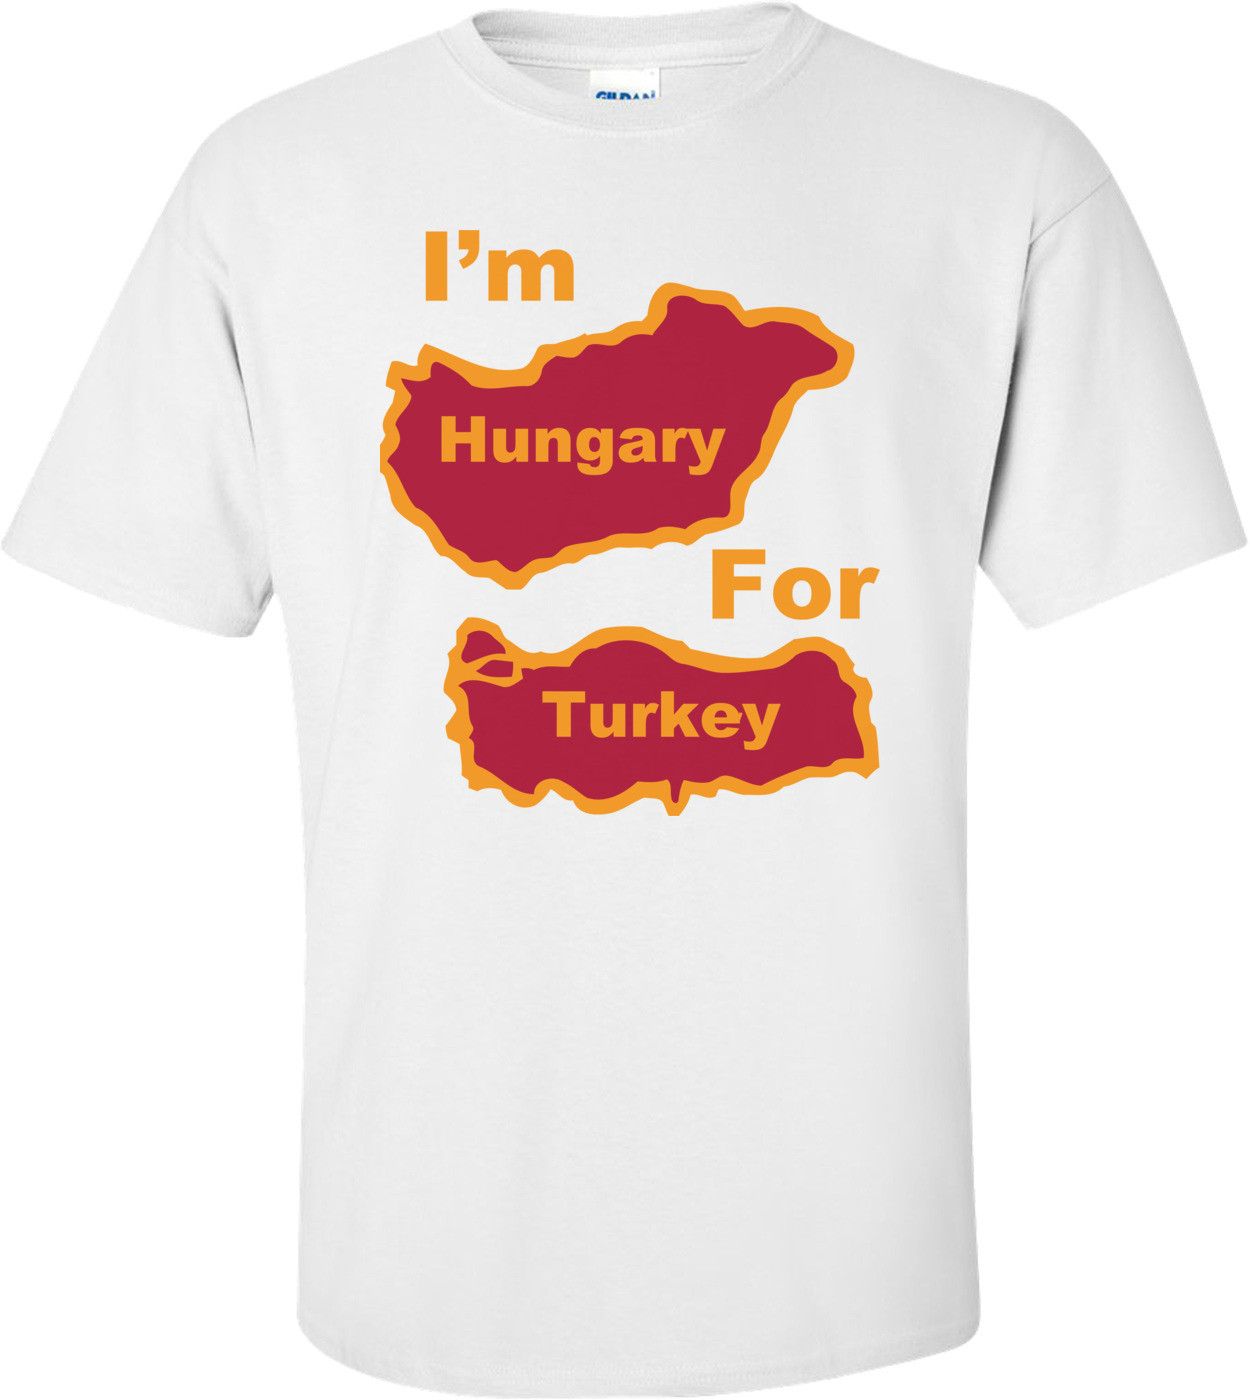 I'm Hungary For Turkey - funny thanksgiving T-shirt